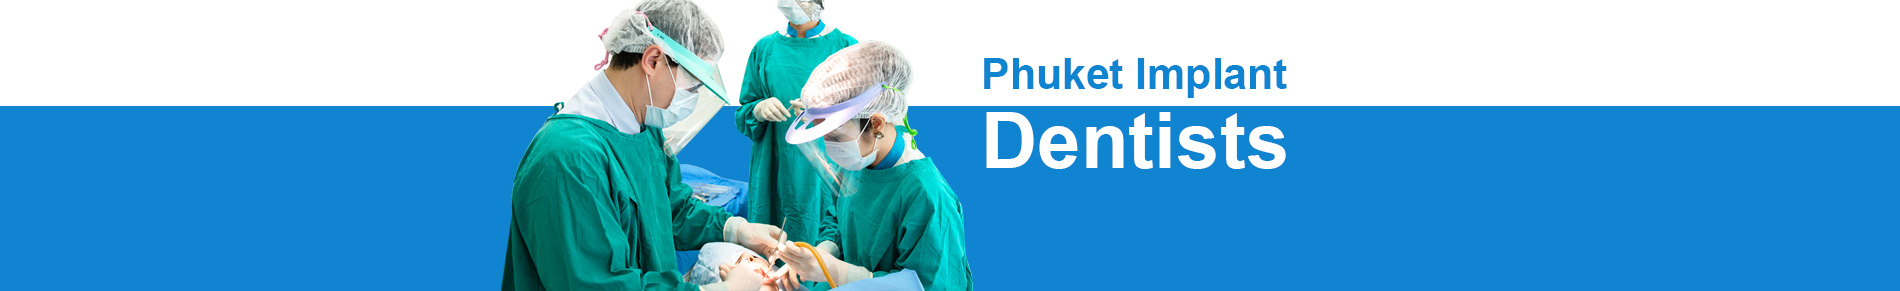 Phuket Dental Implant - Tooth Implants